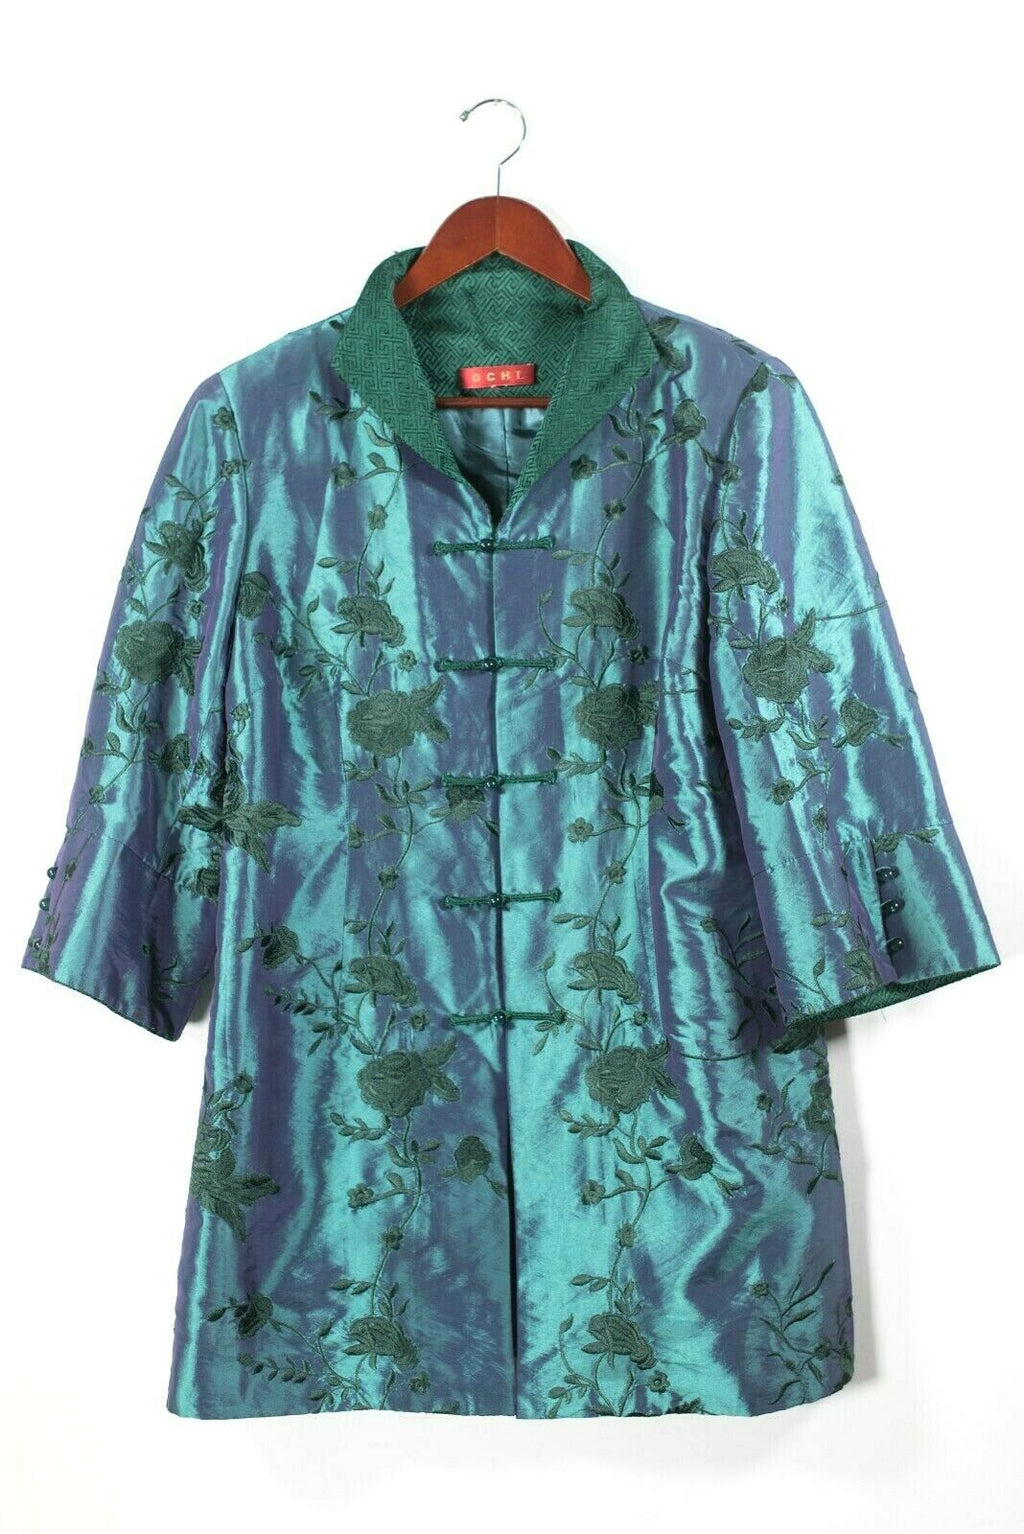 Ochi Womens Medium Teal Green Jacket Embroidered Floral Silk Chinese Blouse Top